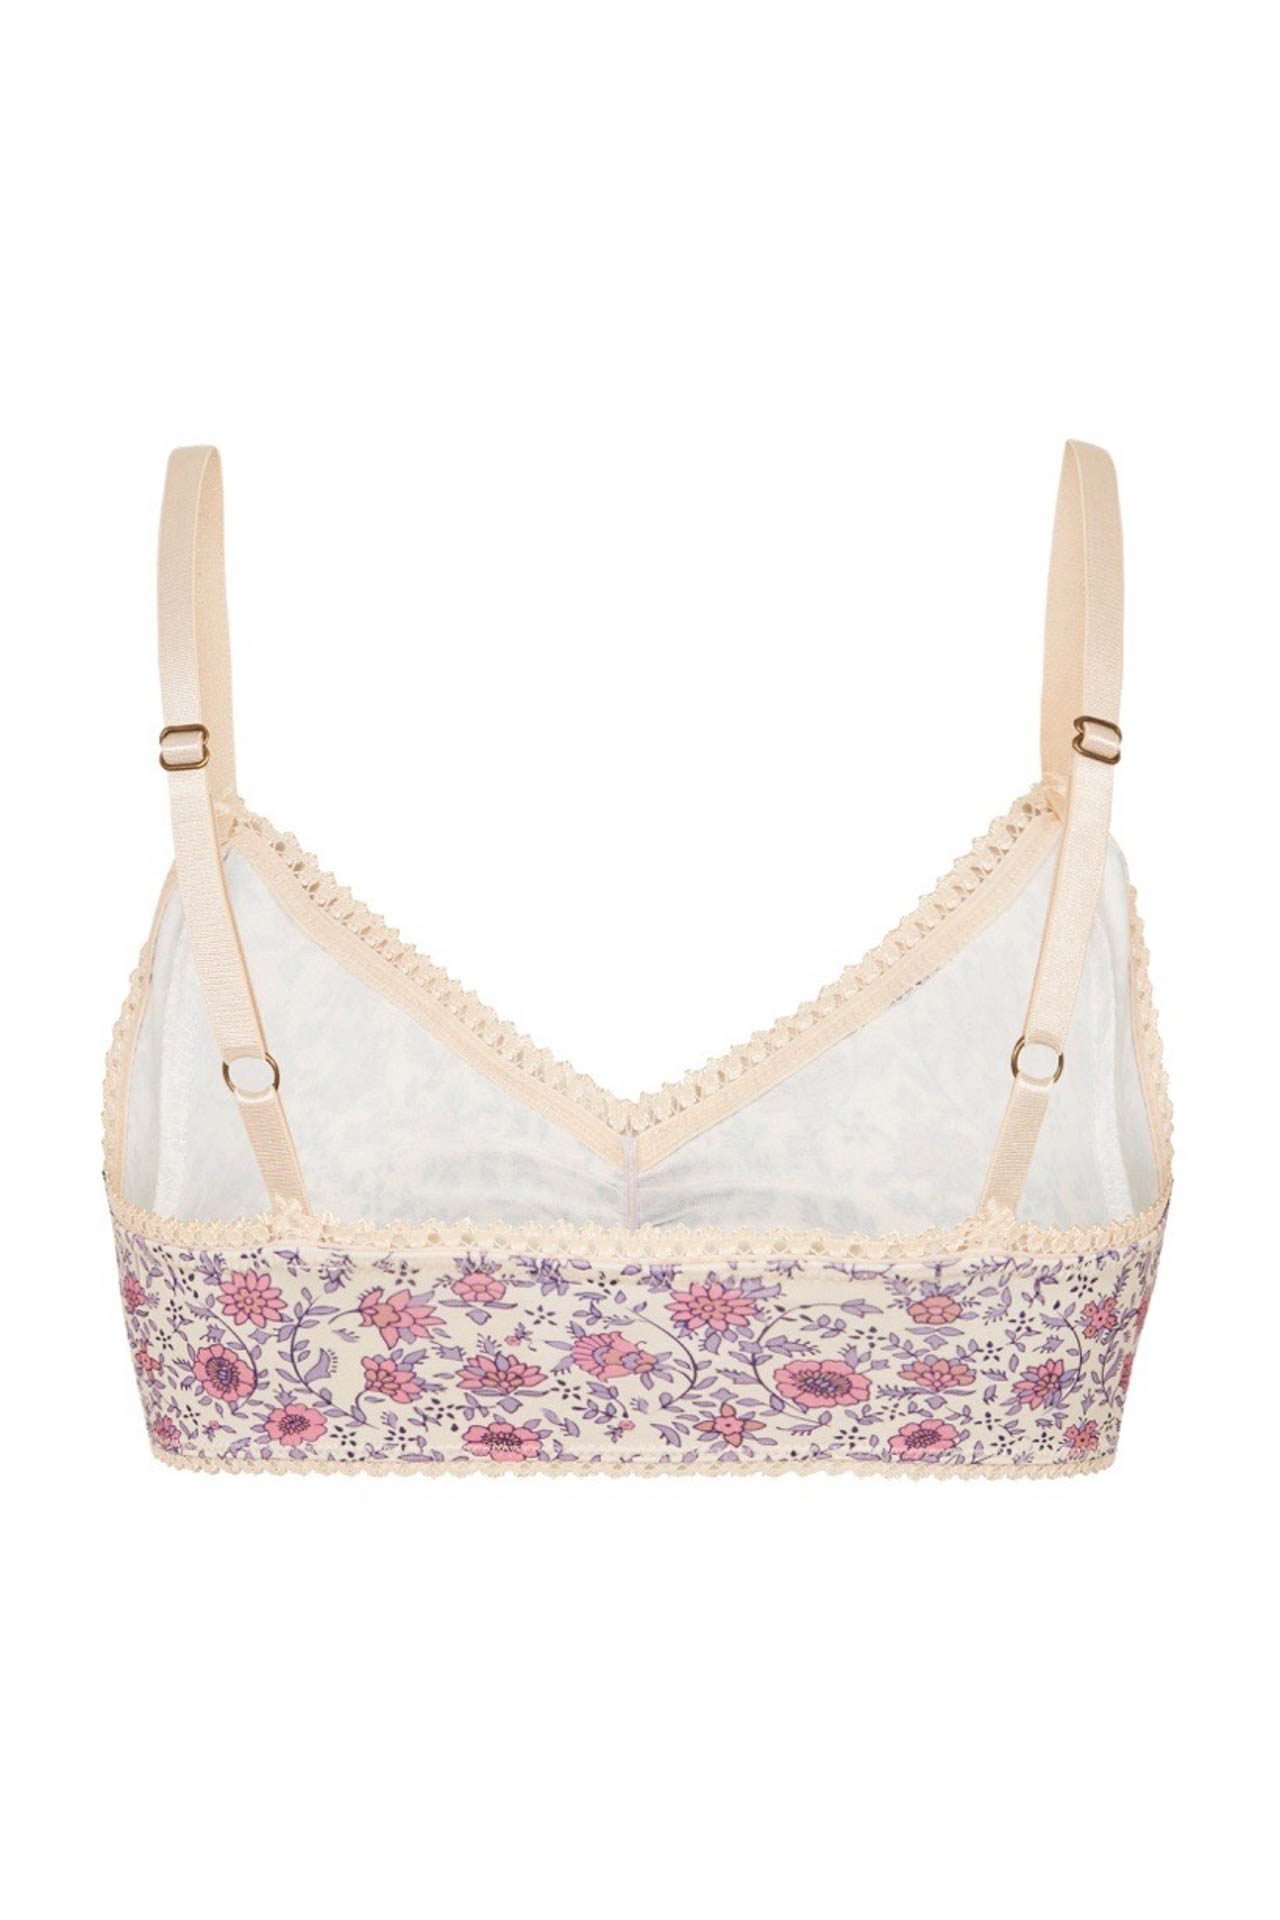 315e92b3a83 Spell   the Gypsy Collective Jasmine Bralette Lilac - Belle   the Brave